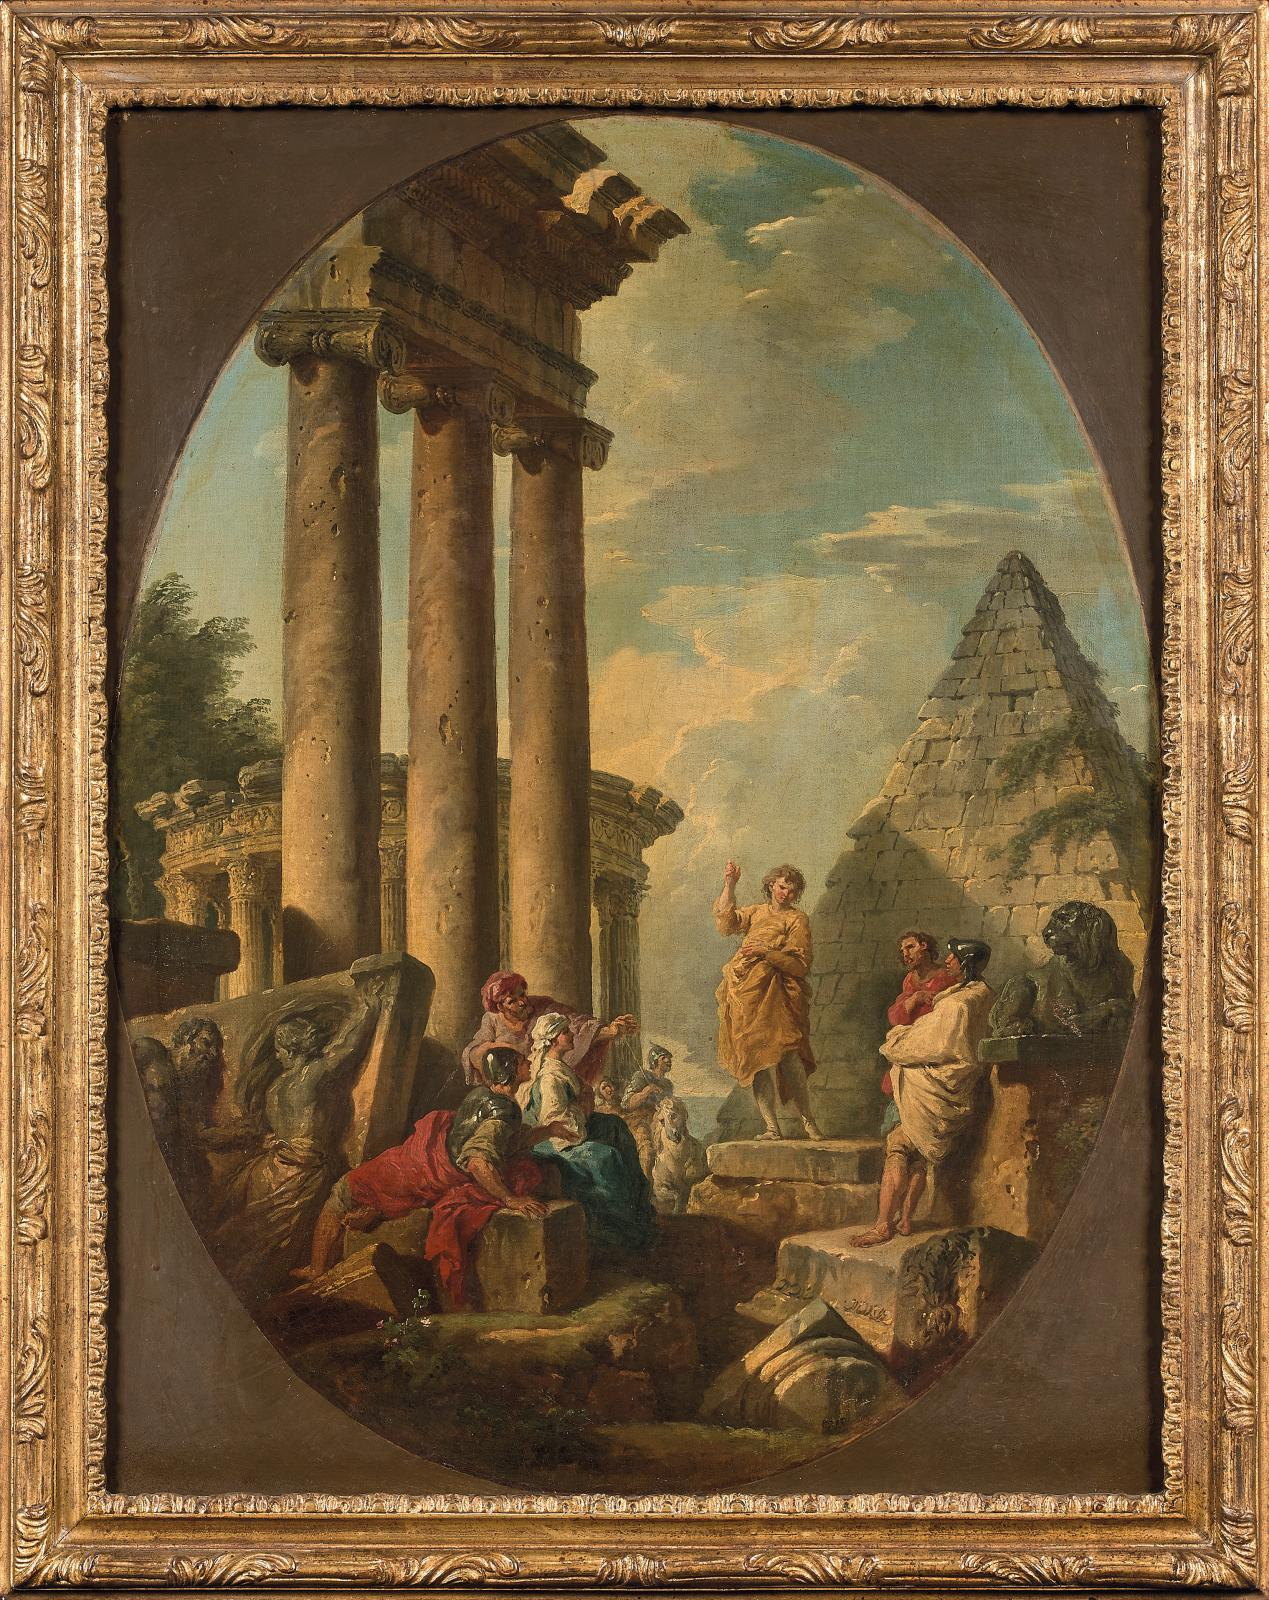 Giovanni Paolo Panini (1691-1765), Apôtre en robe jaune devant une pyramide (Apostle in a Yellow Robe in Front of a Pyramid), oval canvas placed in a